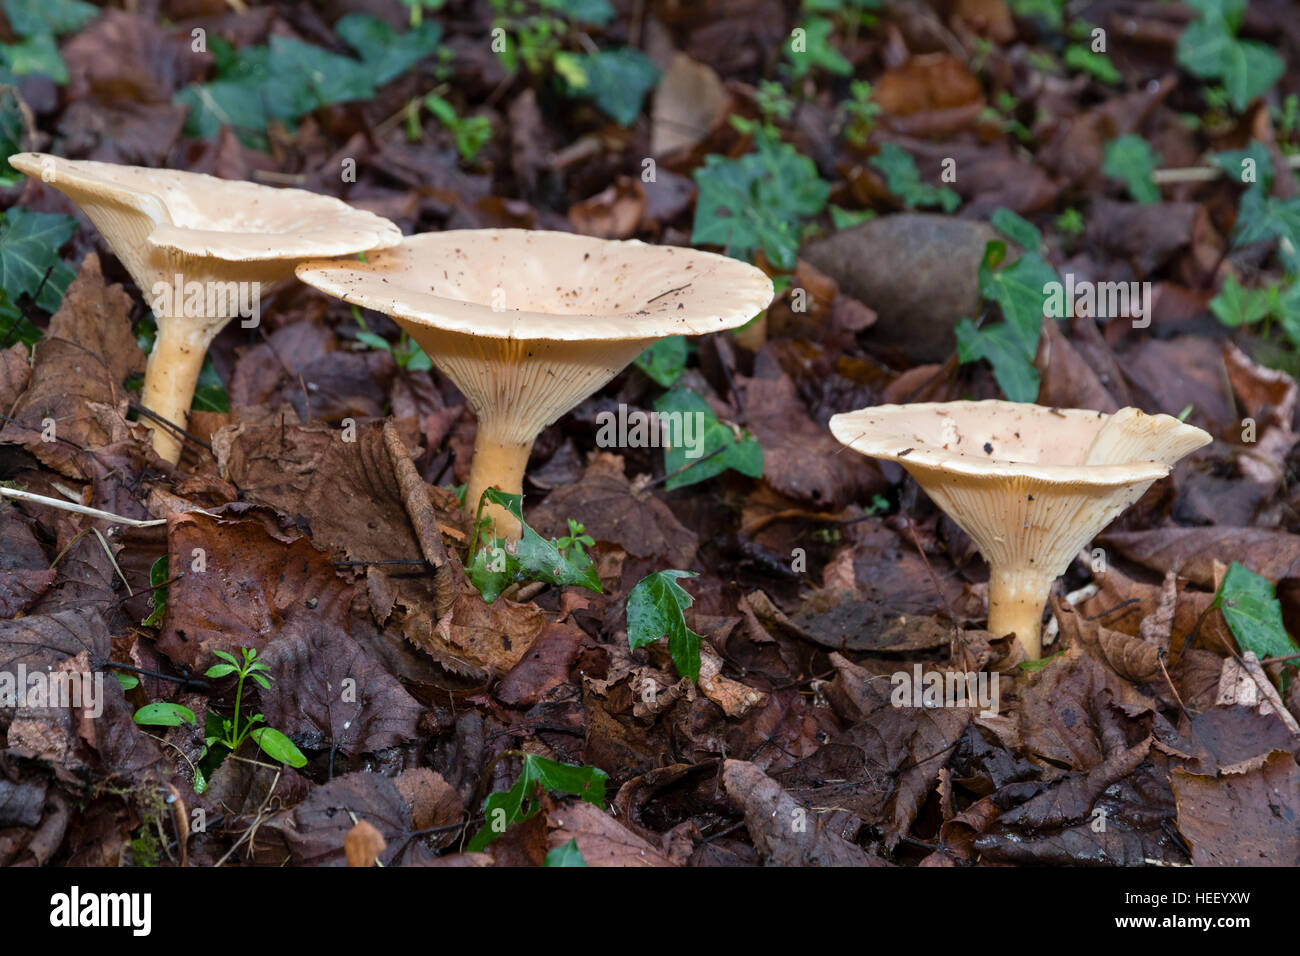 December fruiting bodies of the common funnel mushroom, Clitocybe gibba, emerging through leaf litter - Stock Image